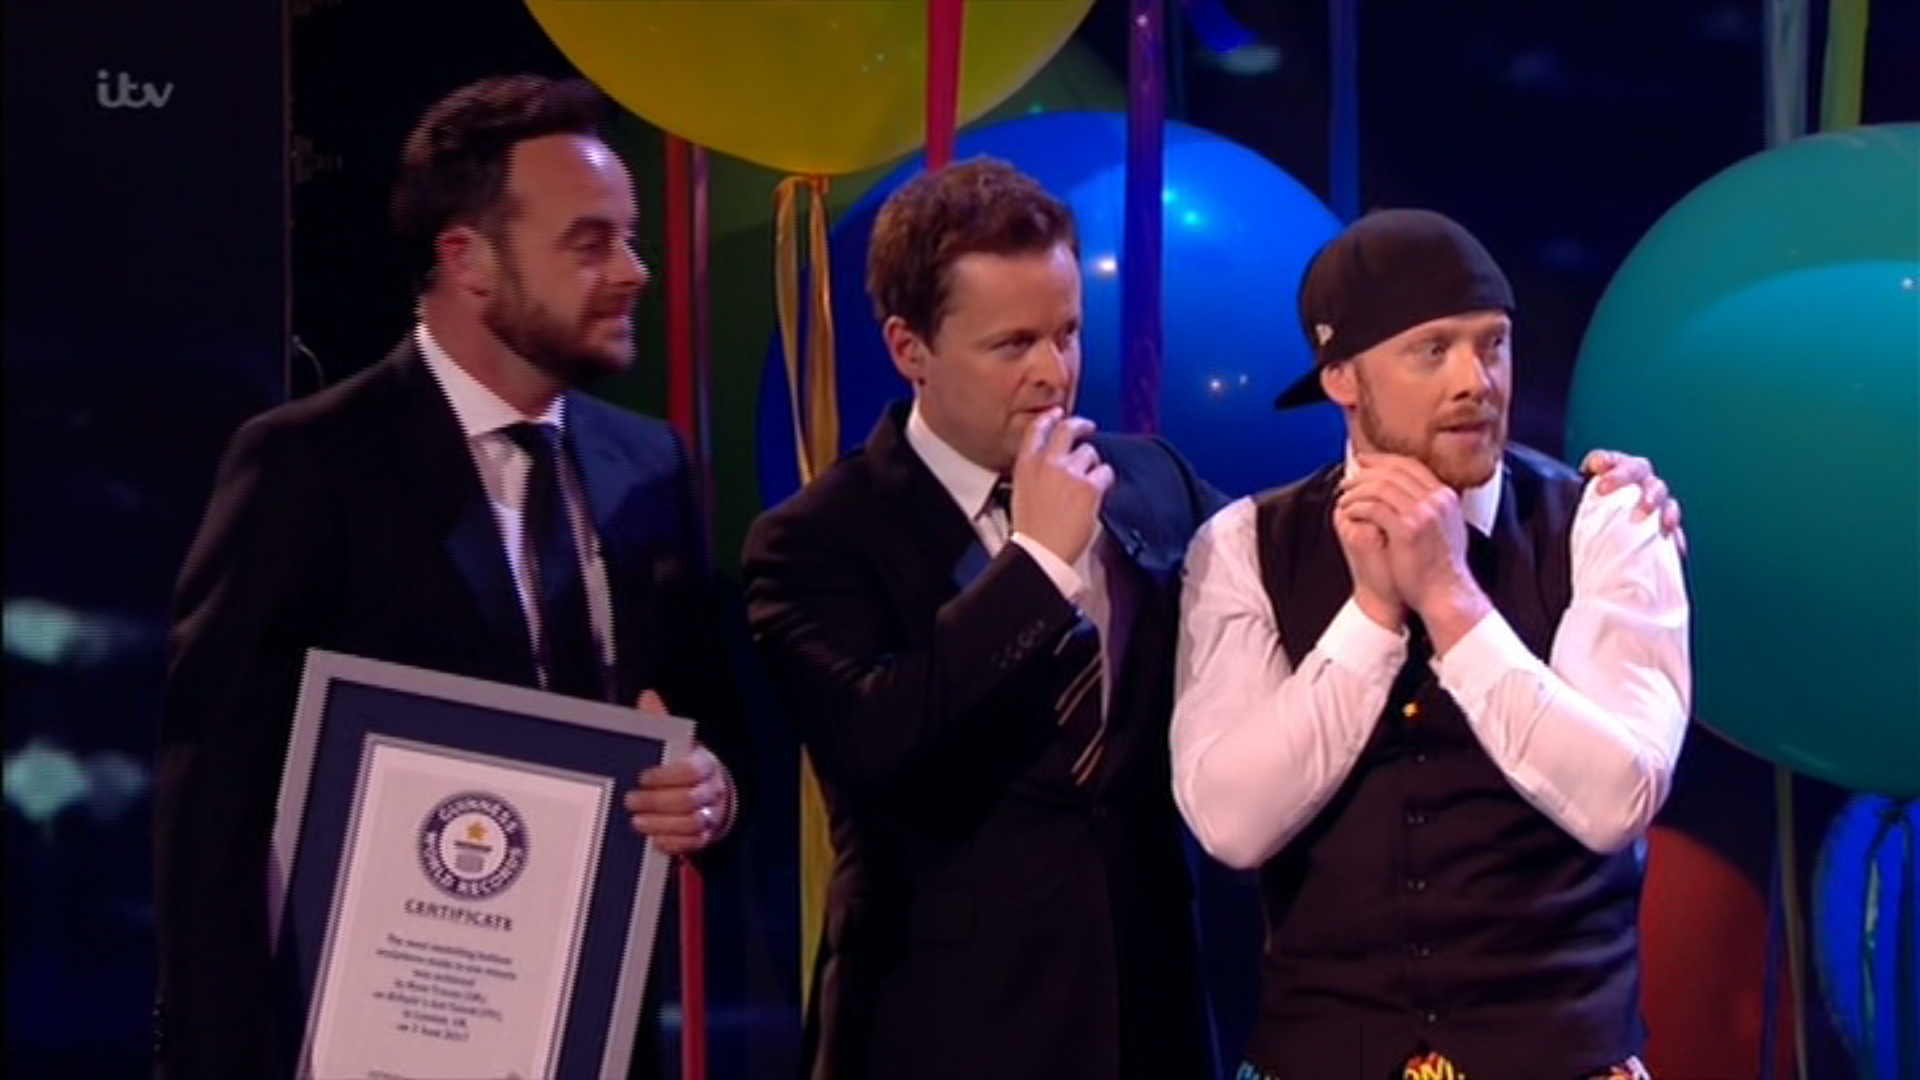 Britain's Got Talent hopeful fails to beat Guinness World Record during balloon act